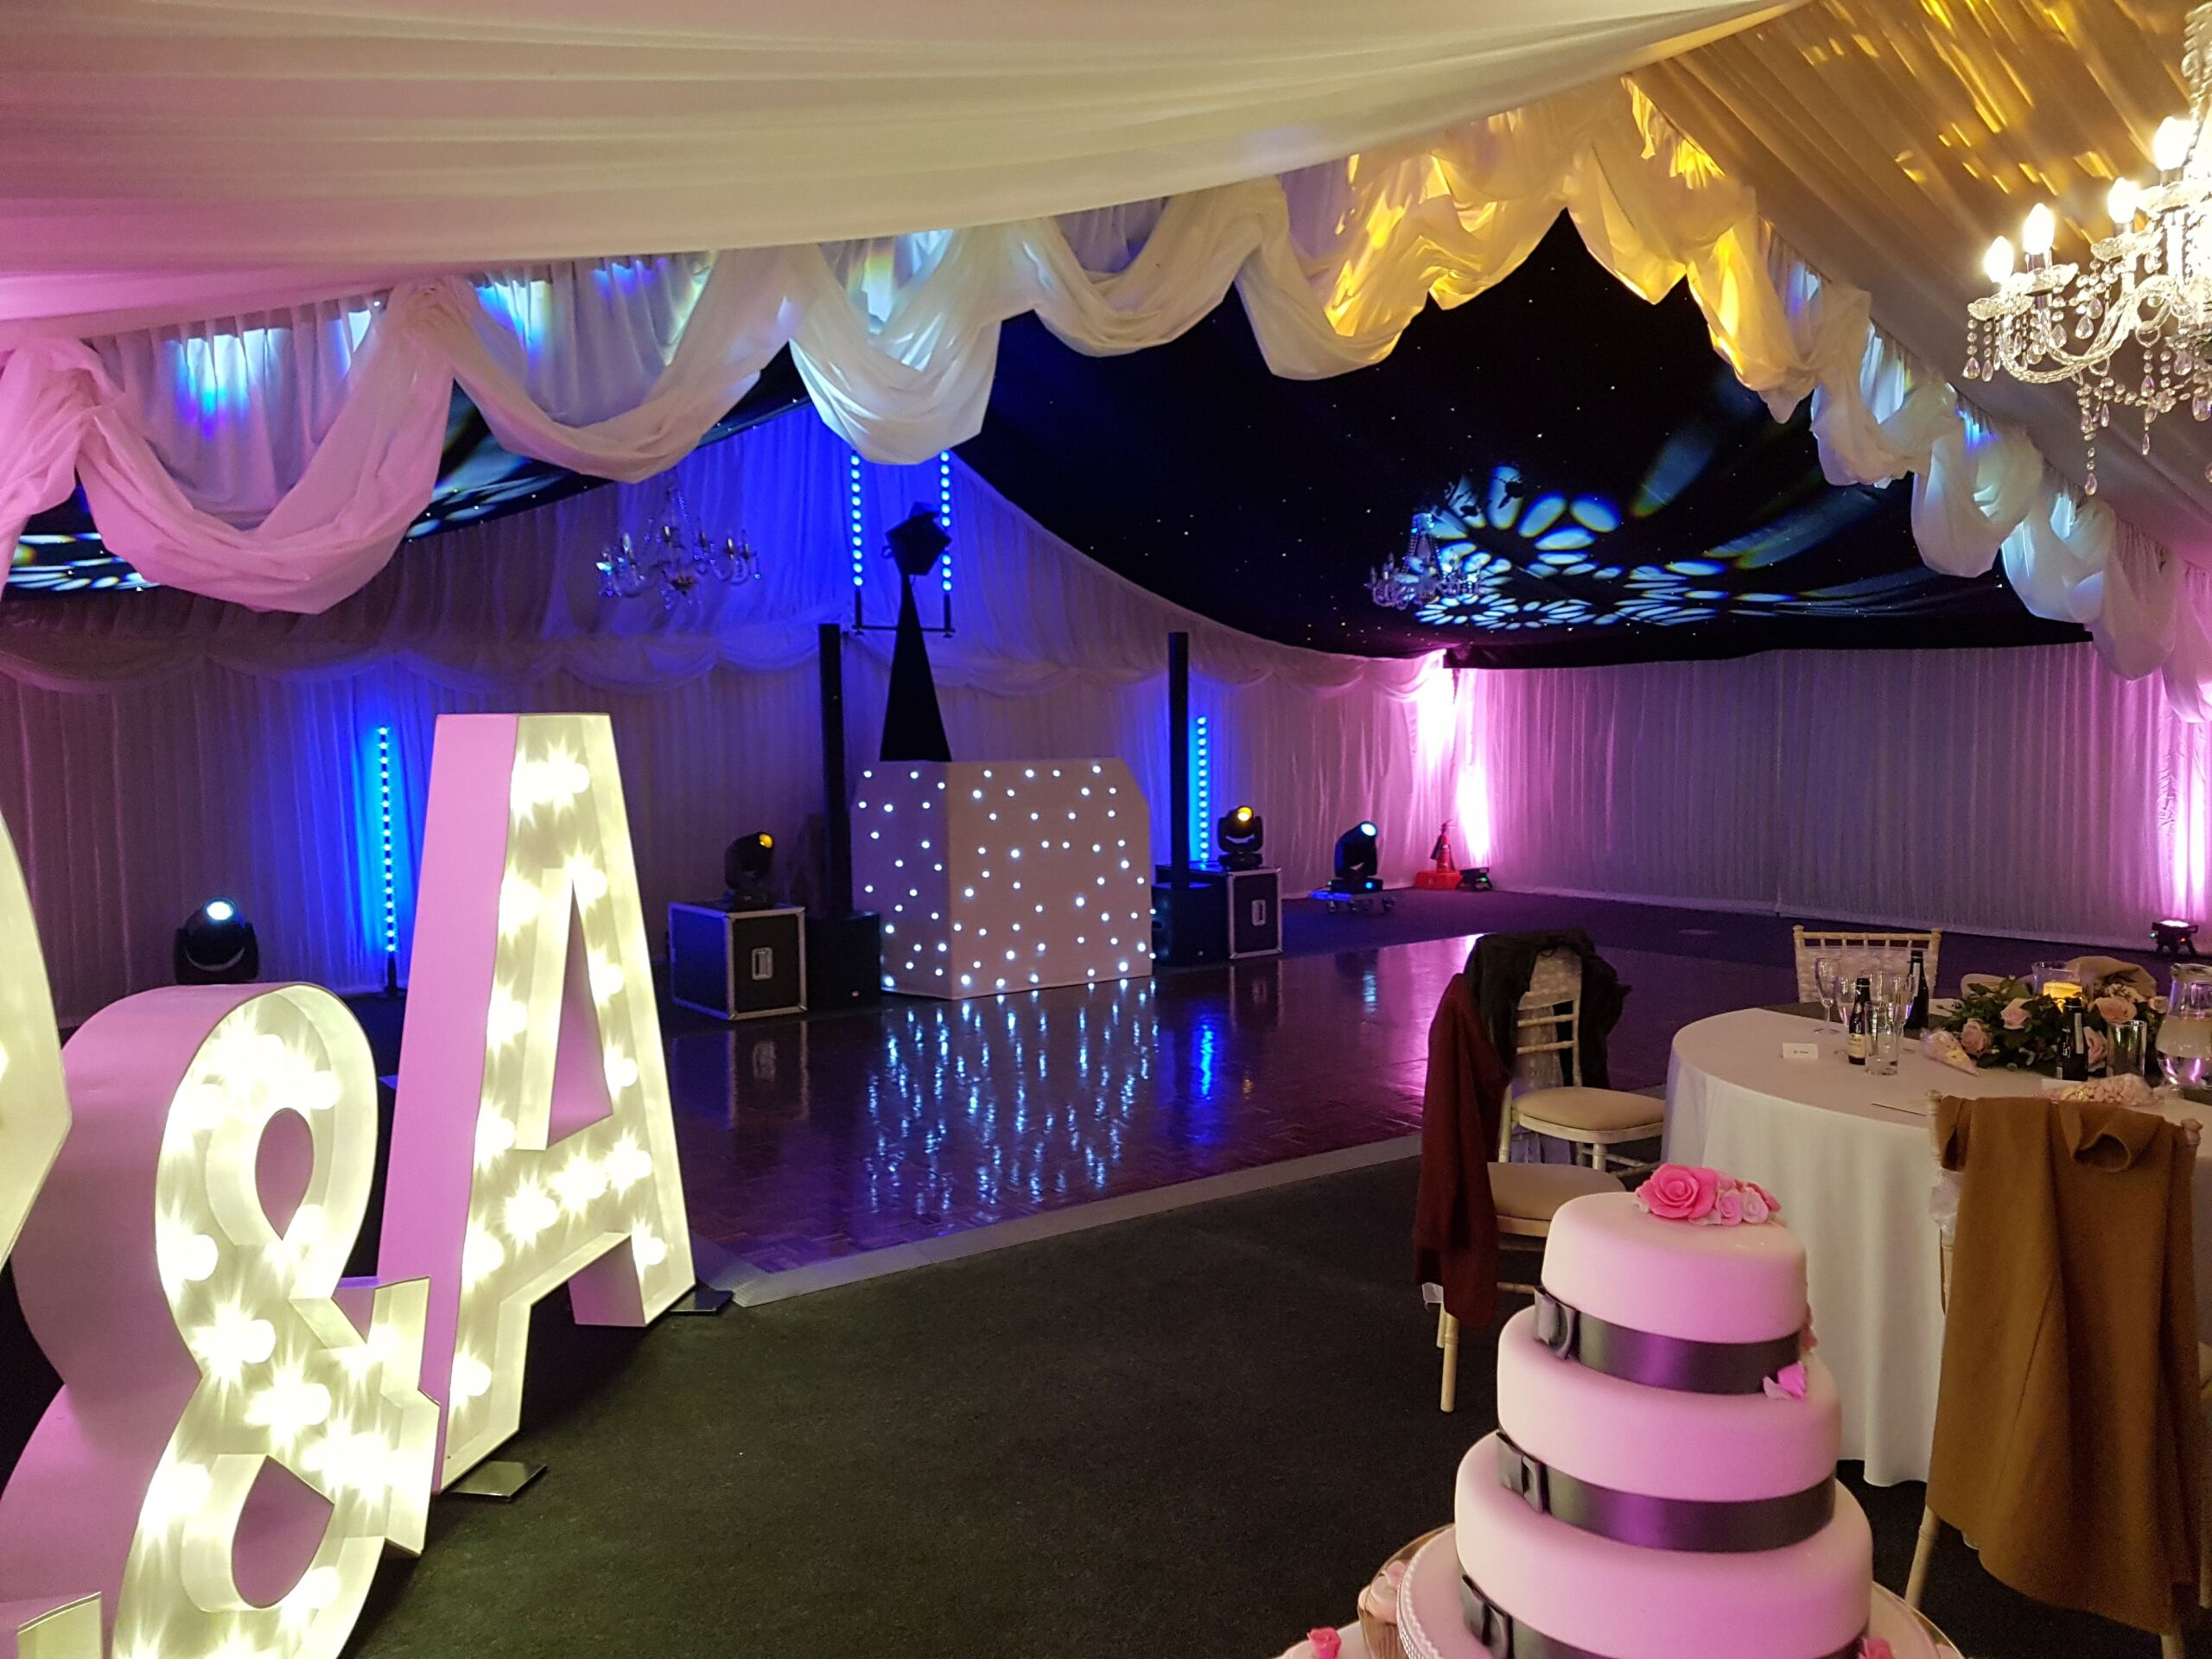 Mobile disco with white DJ booth, large lettters and cake